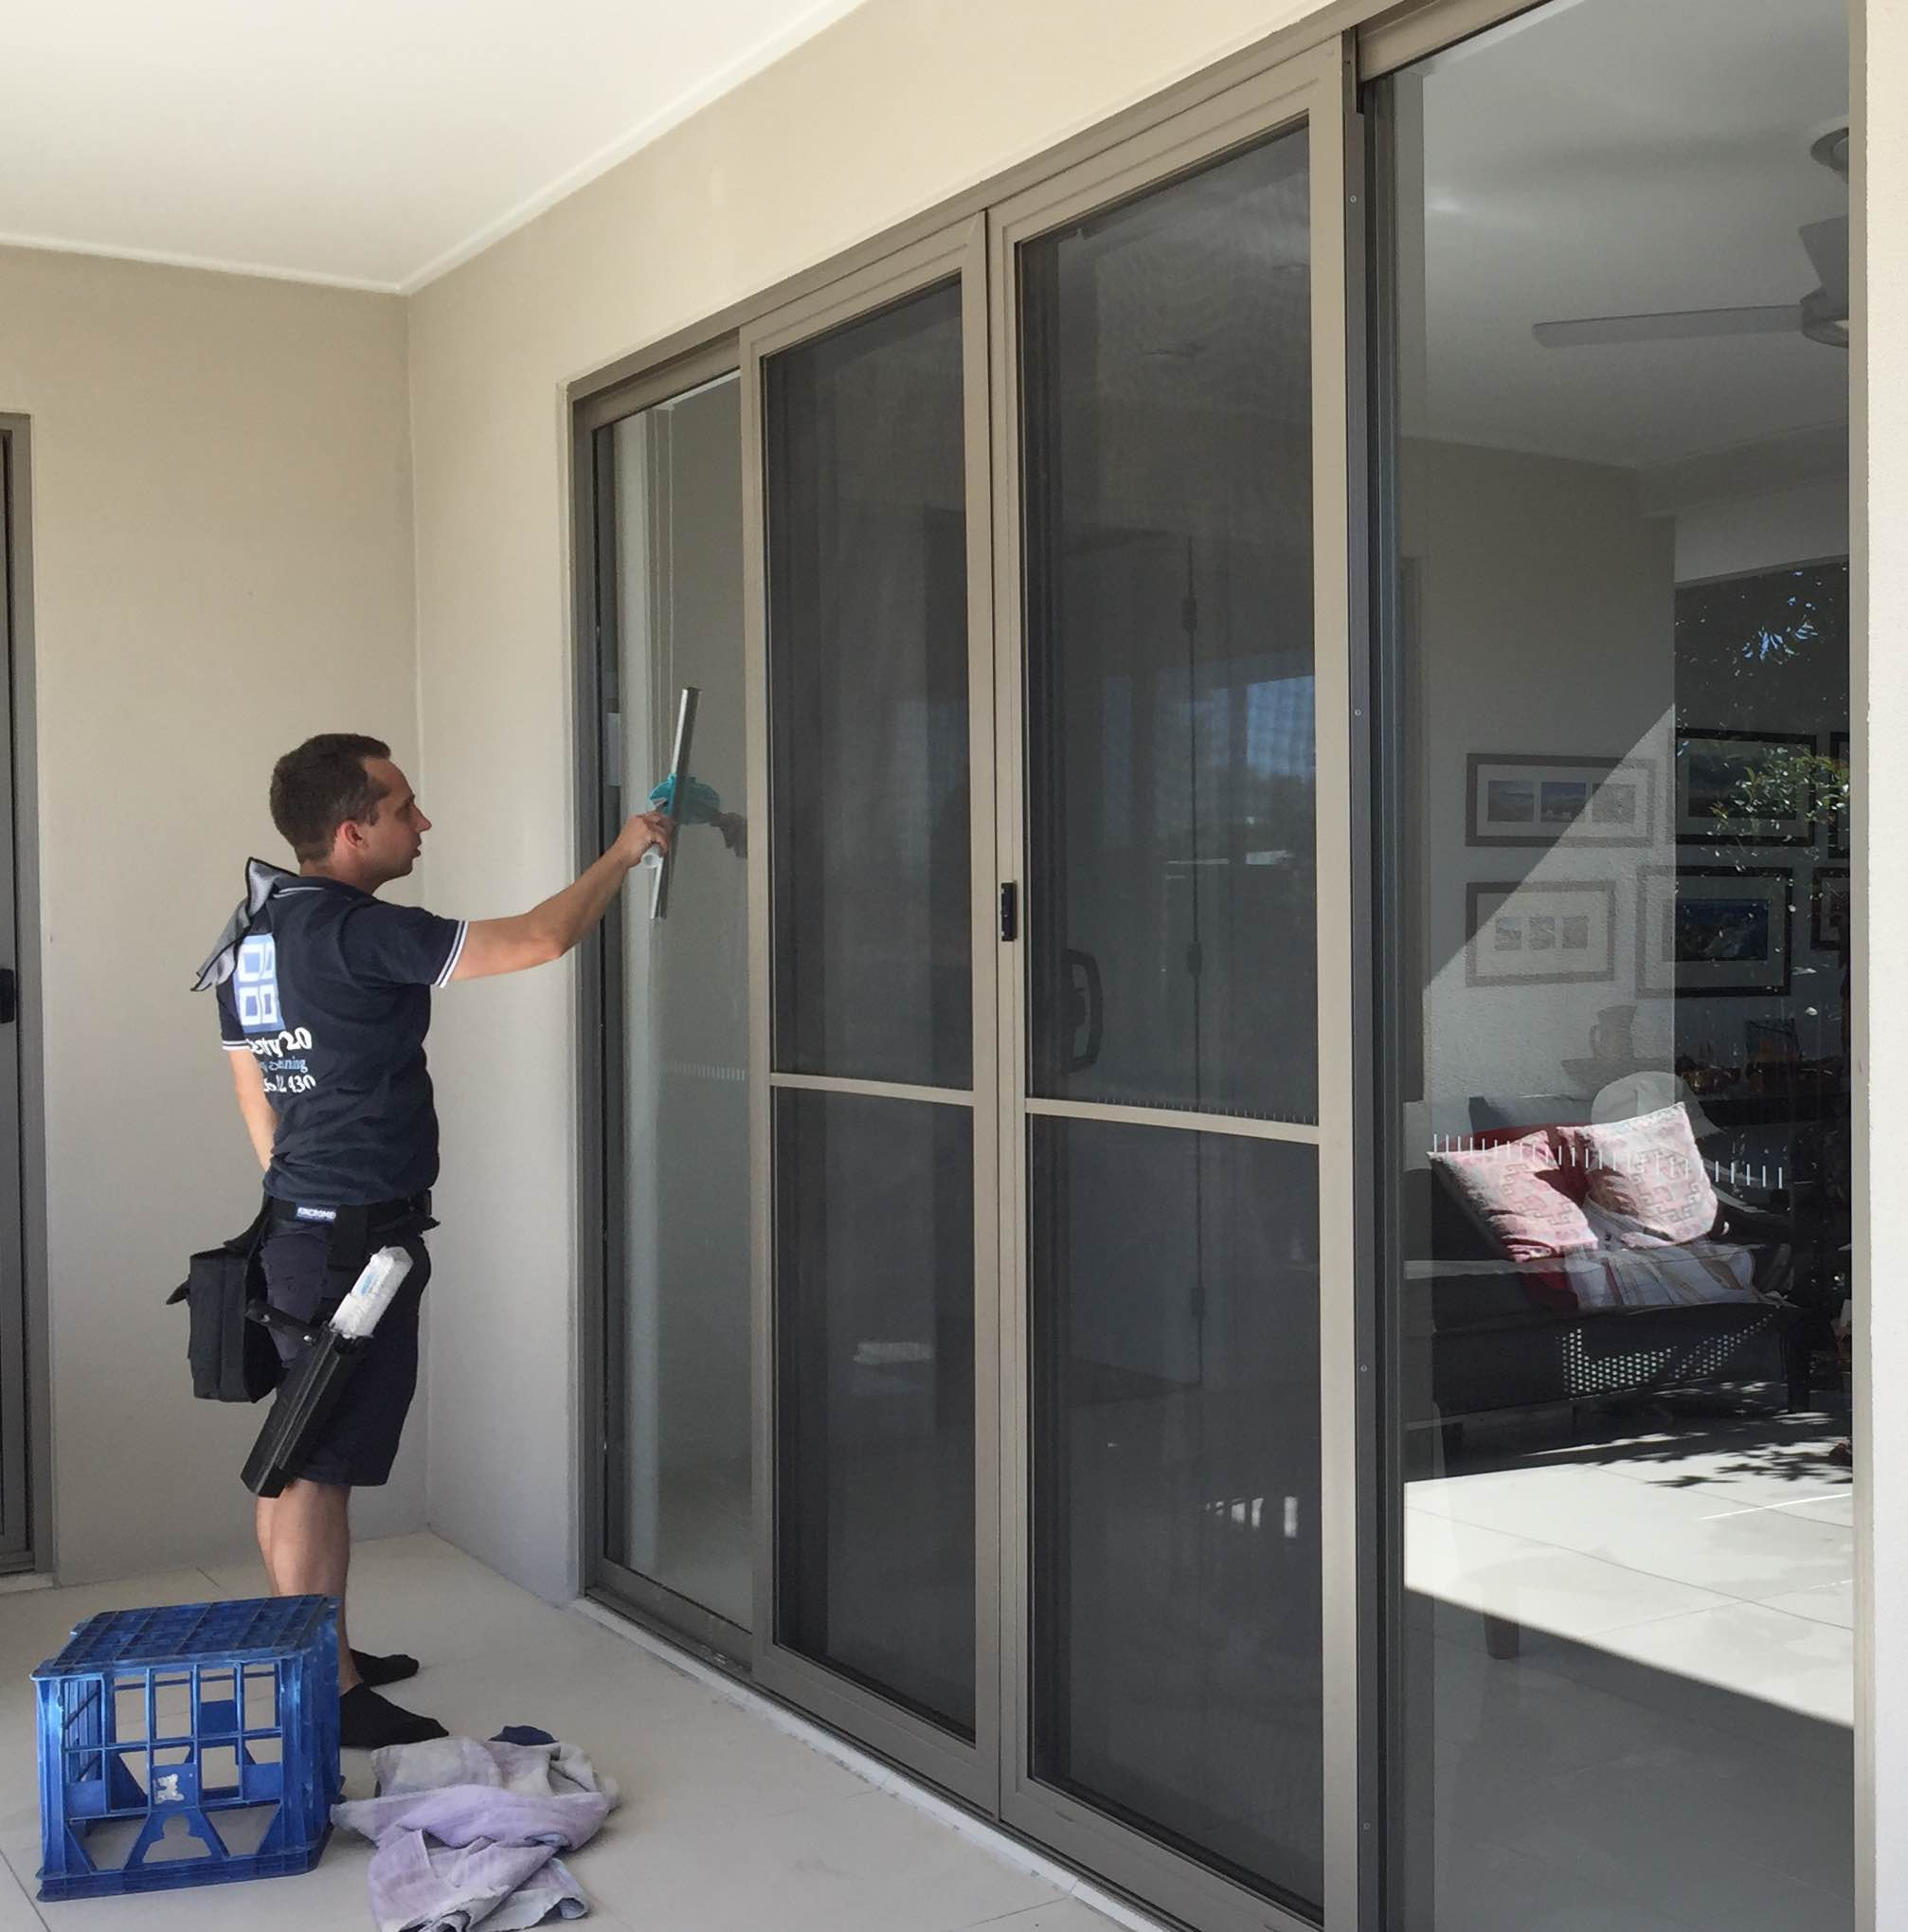 Twenty20 offer a range of window cleaning solutions for homes from Currumbin to Ashmore.